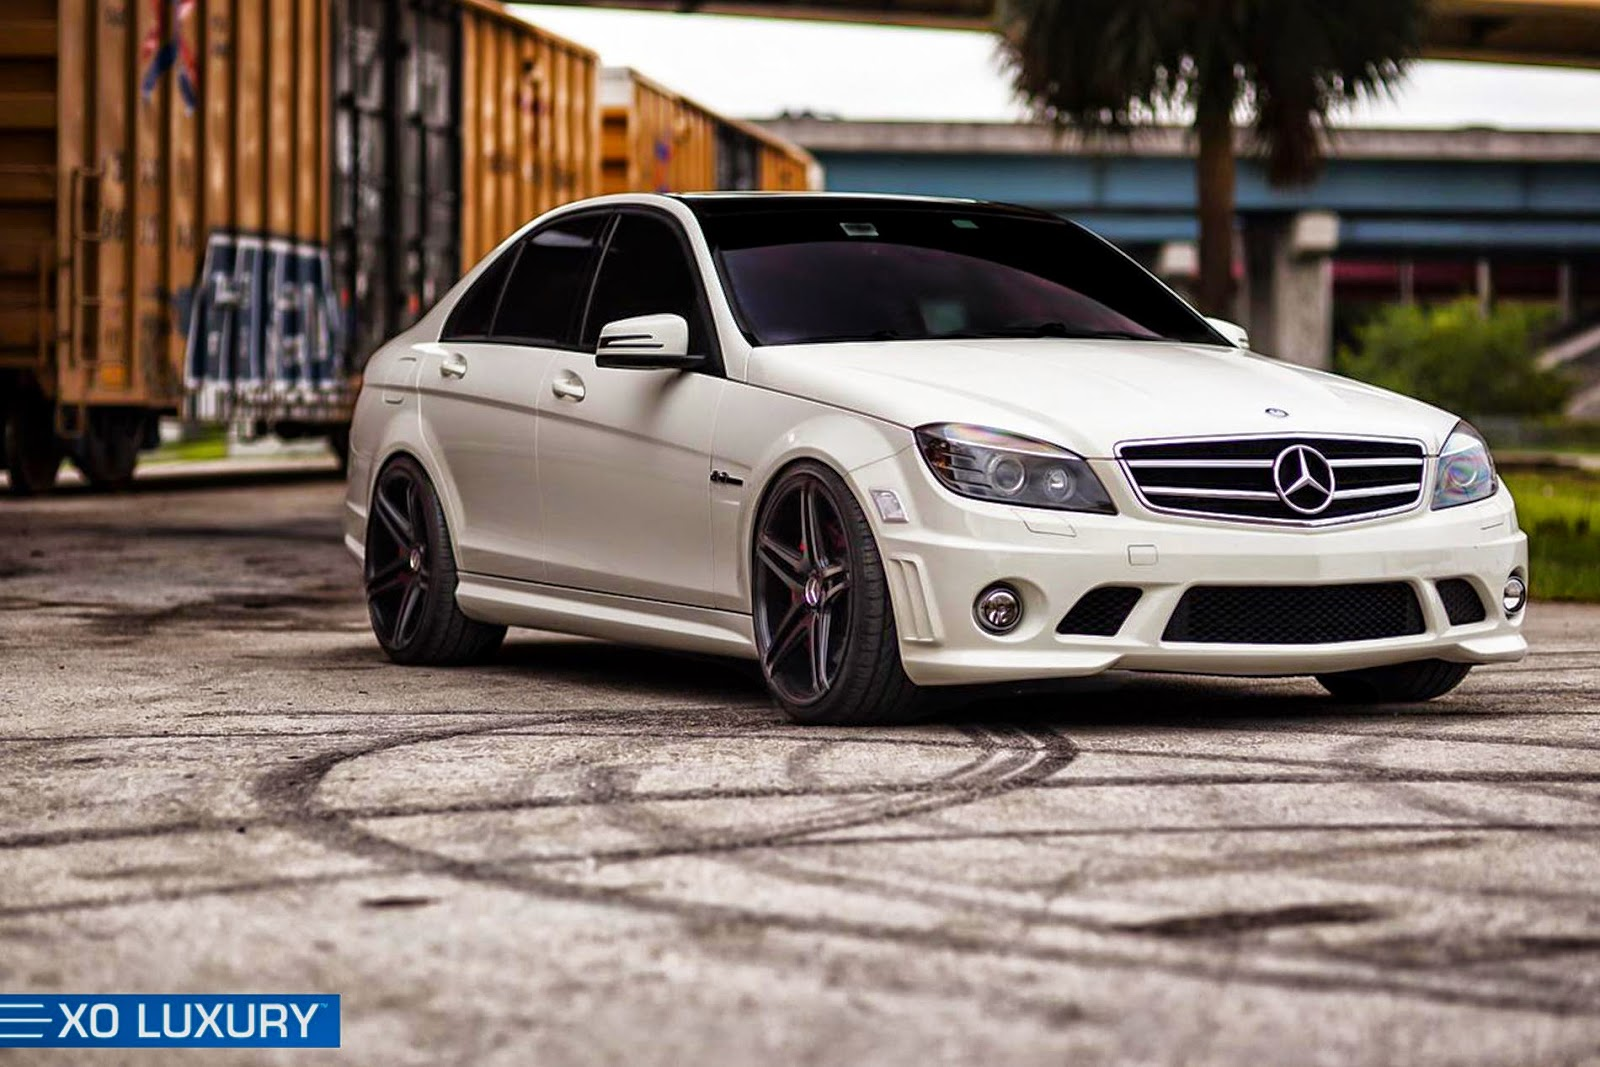 mercedes benz w204 c63 amg on xo luxury wheels benztuning. Black Bedroom Furniture Sets. Home Design Ideas